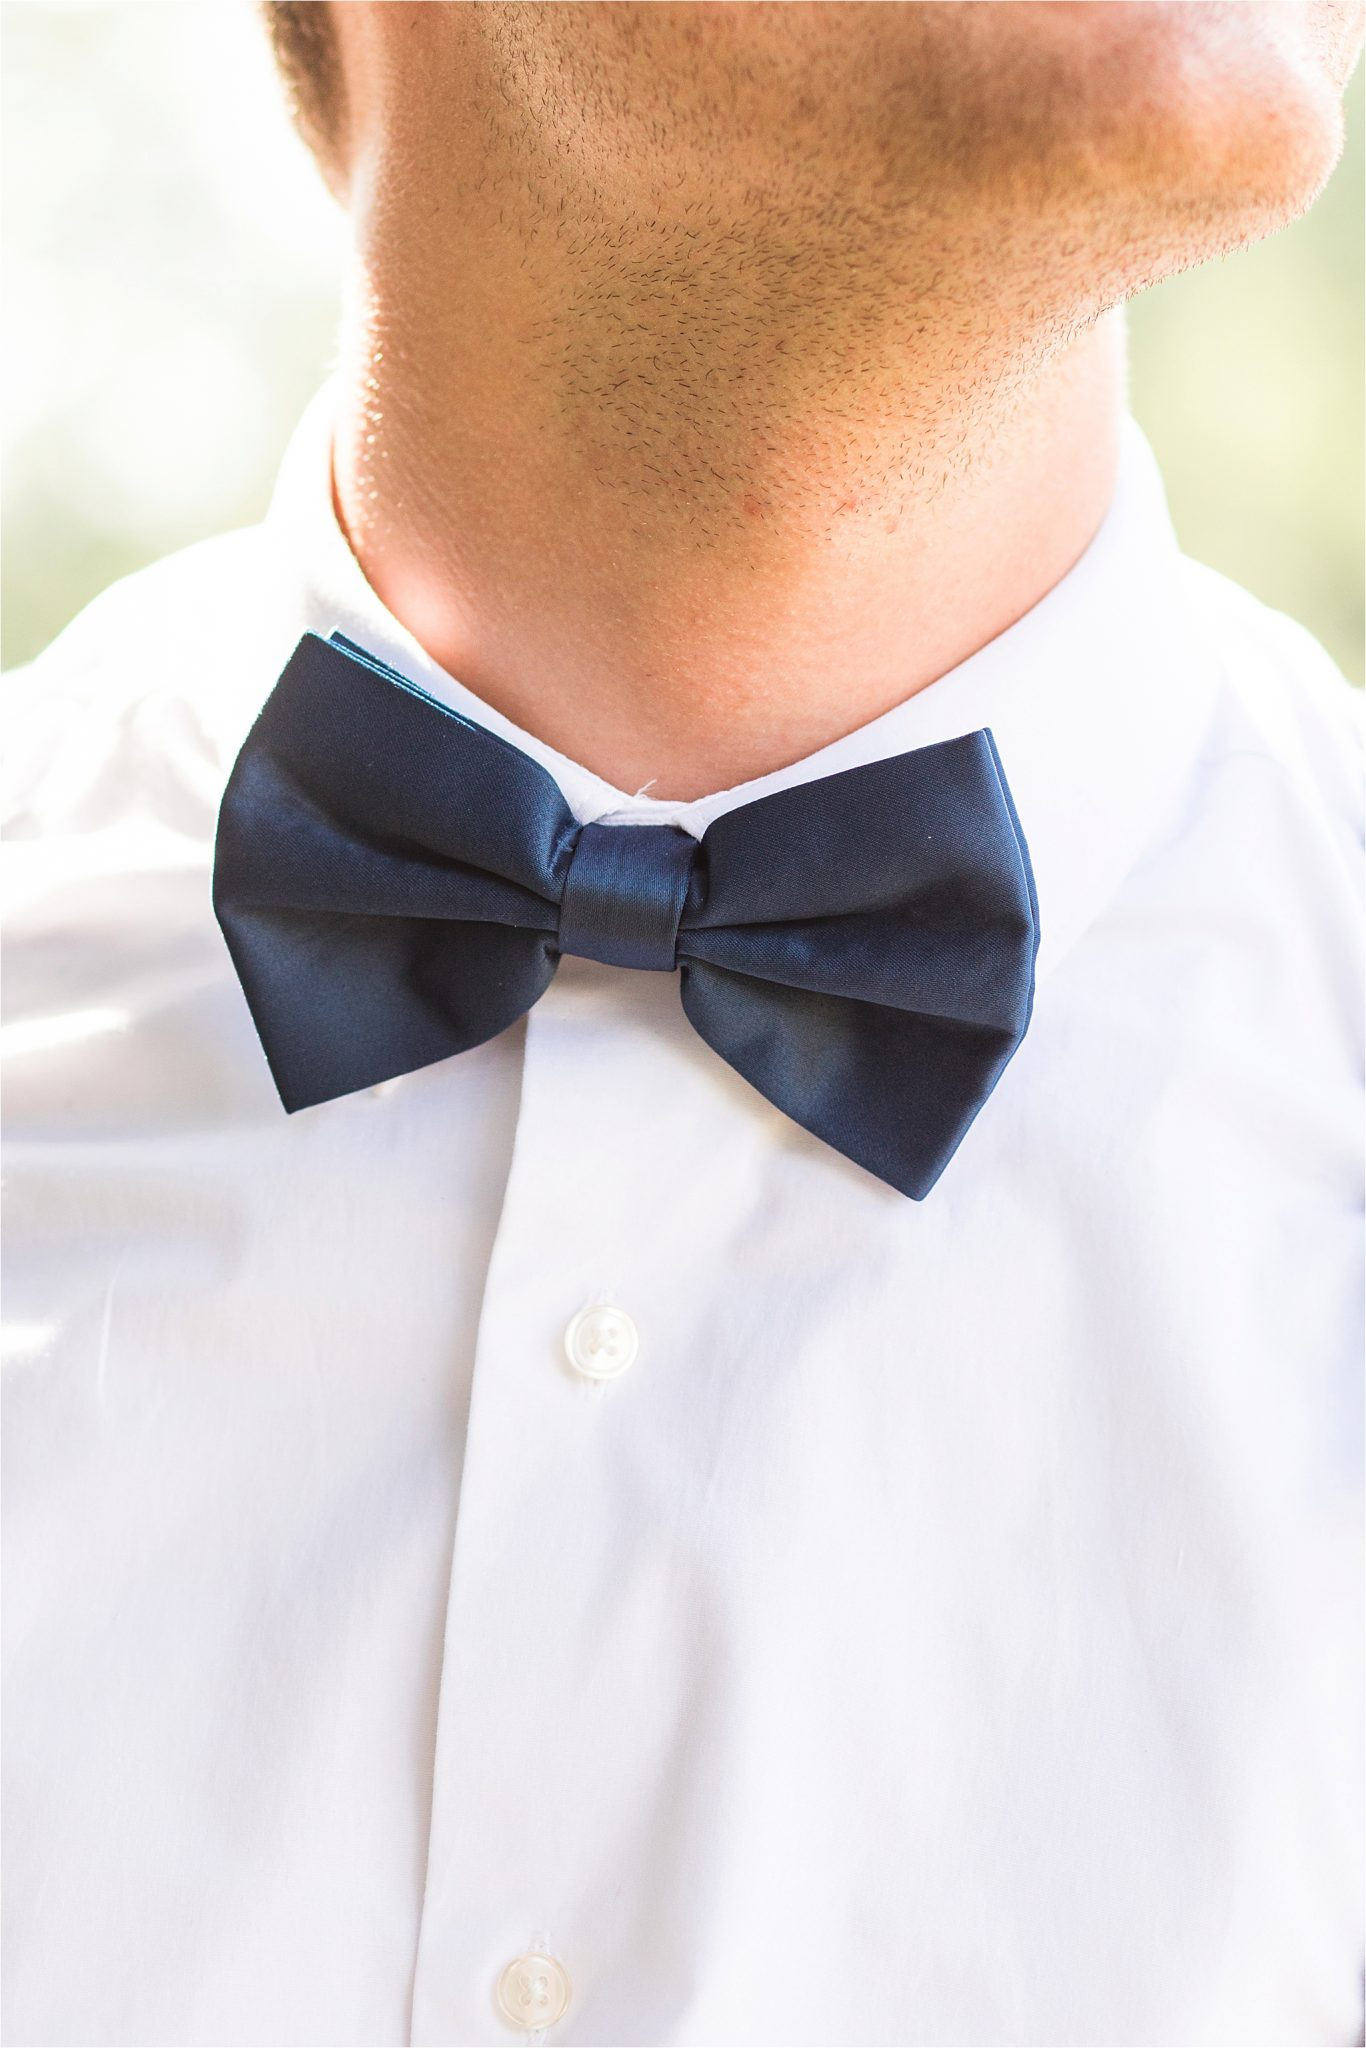 groomsmen-simple-navy-blue-bow-tie-deep-tight-knot